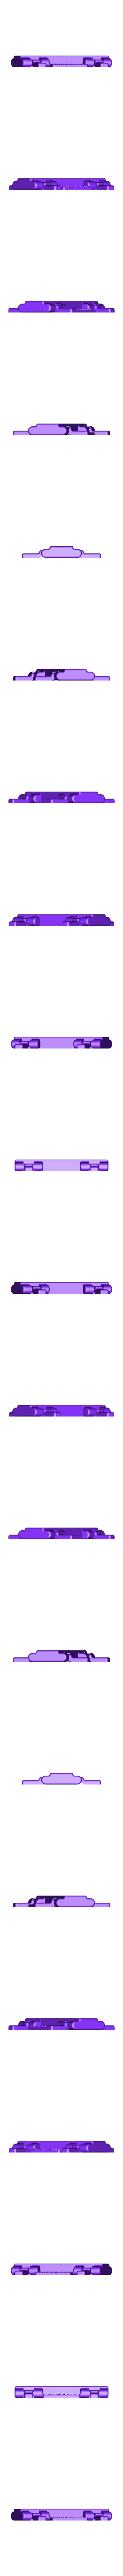 Light.stl Download free STL file Measure the Speed of Light With Chocolate! • 3D printable design, Yuval_Dascalu